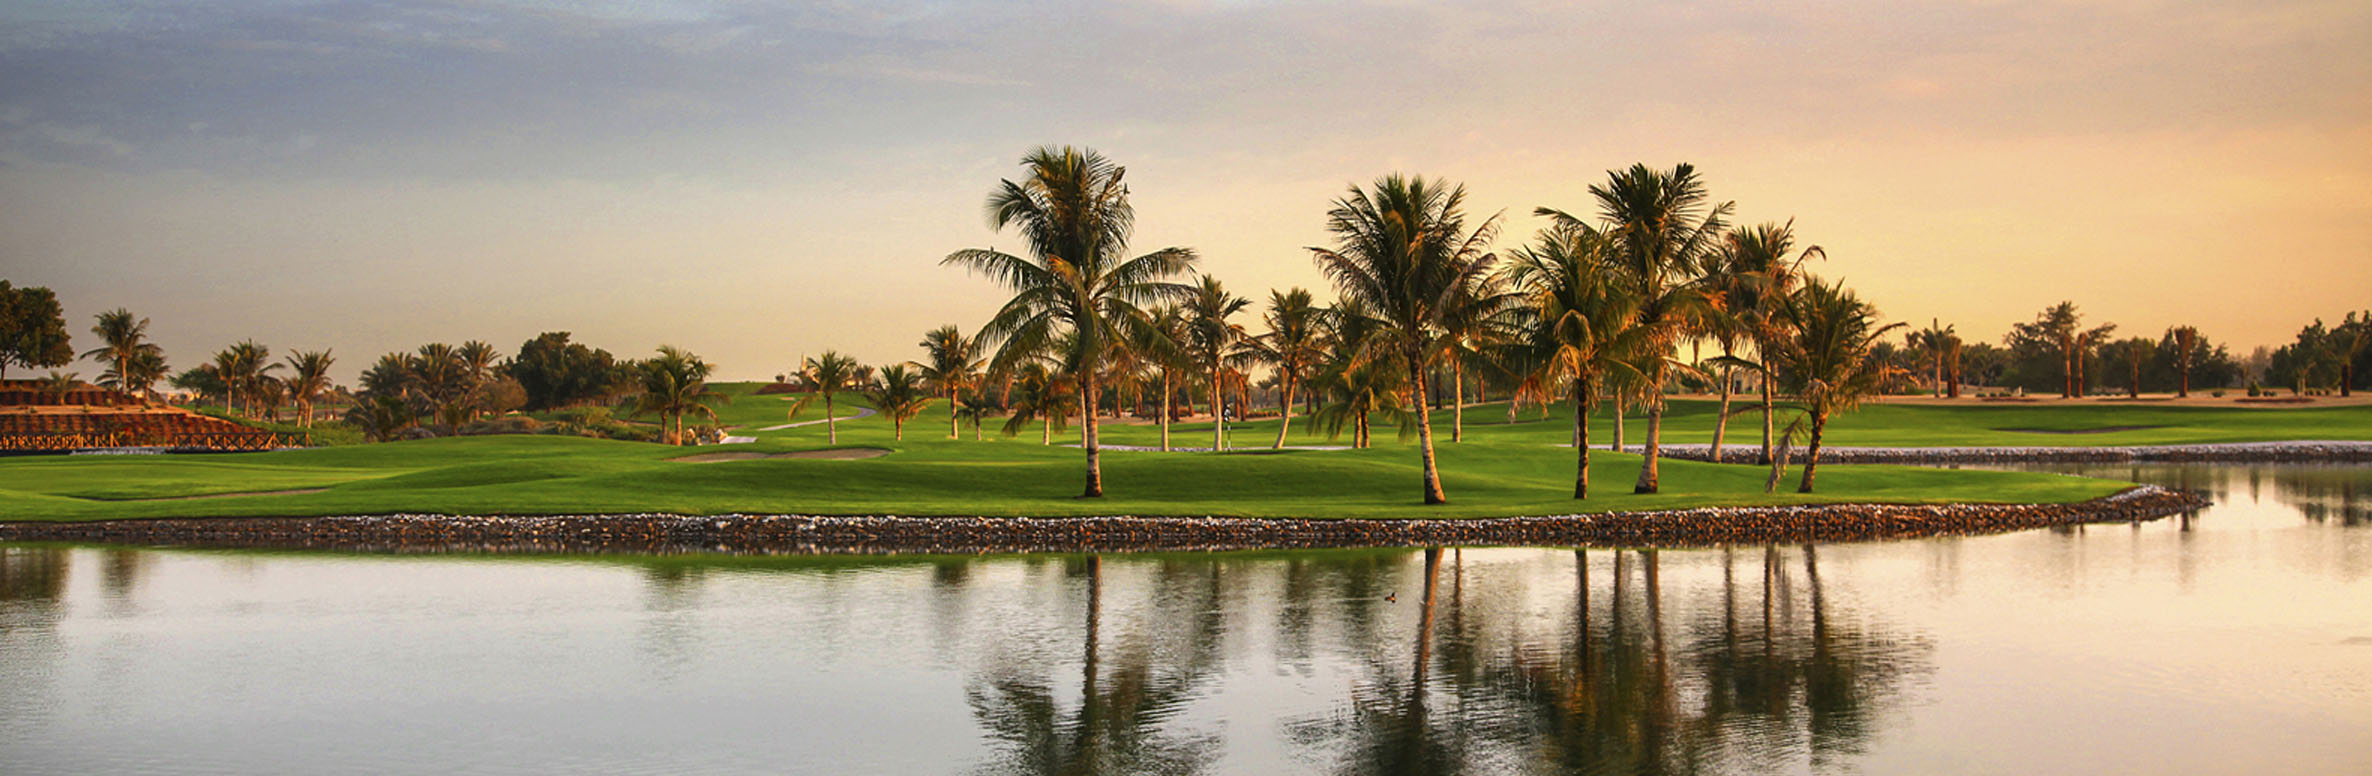 Golf Course Image - Abu Dhabi Golf Club No. 6